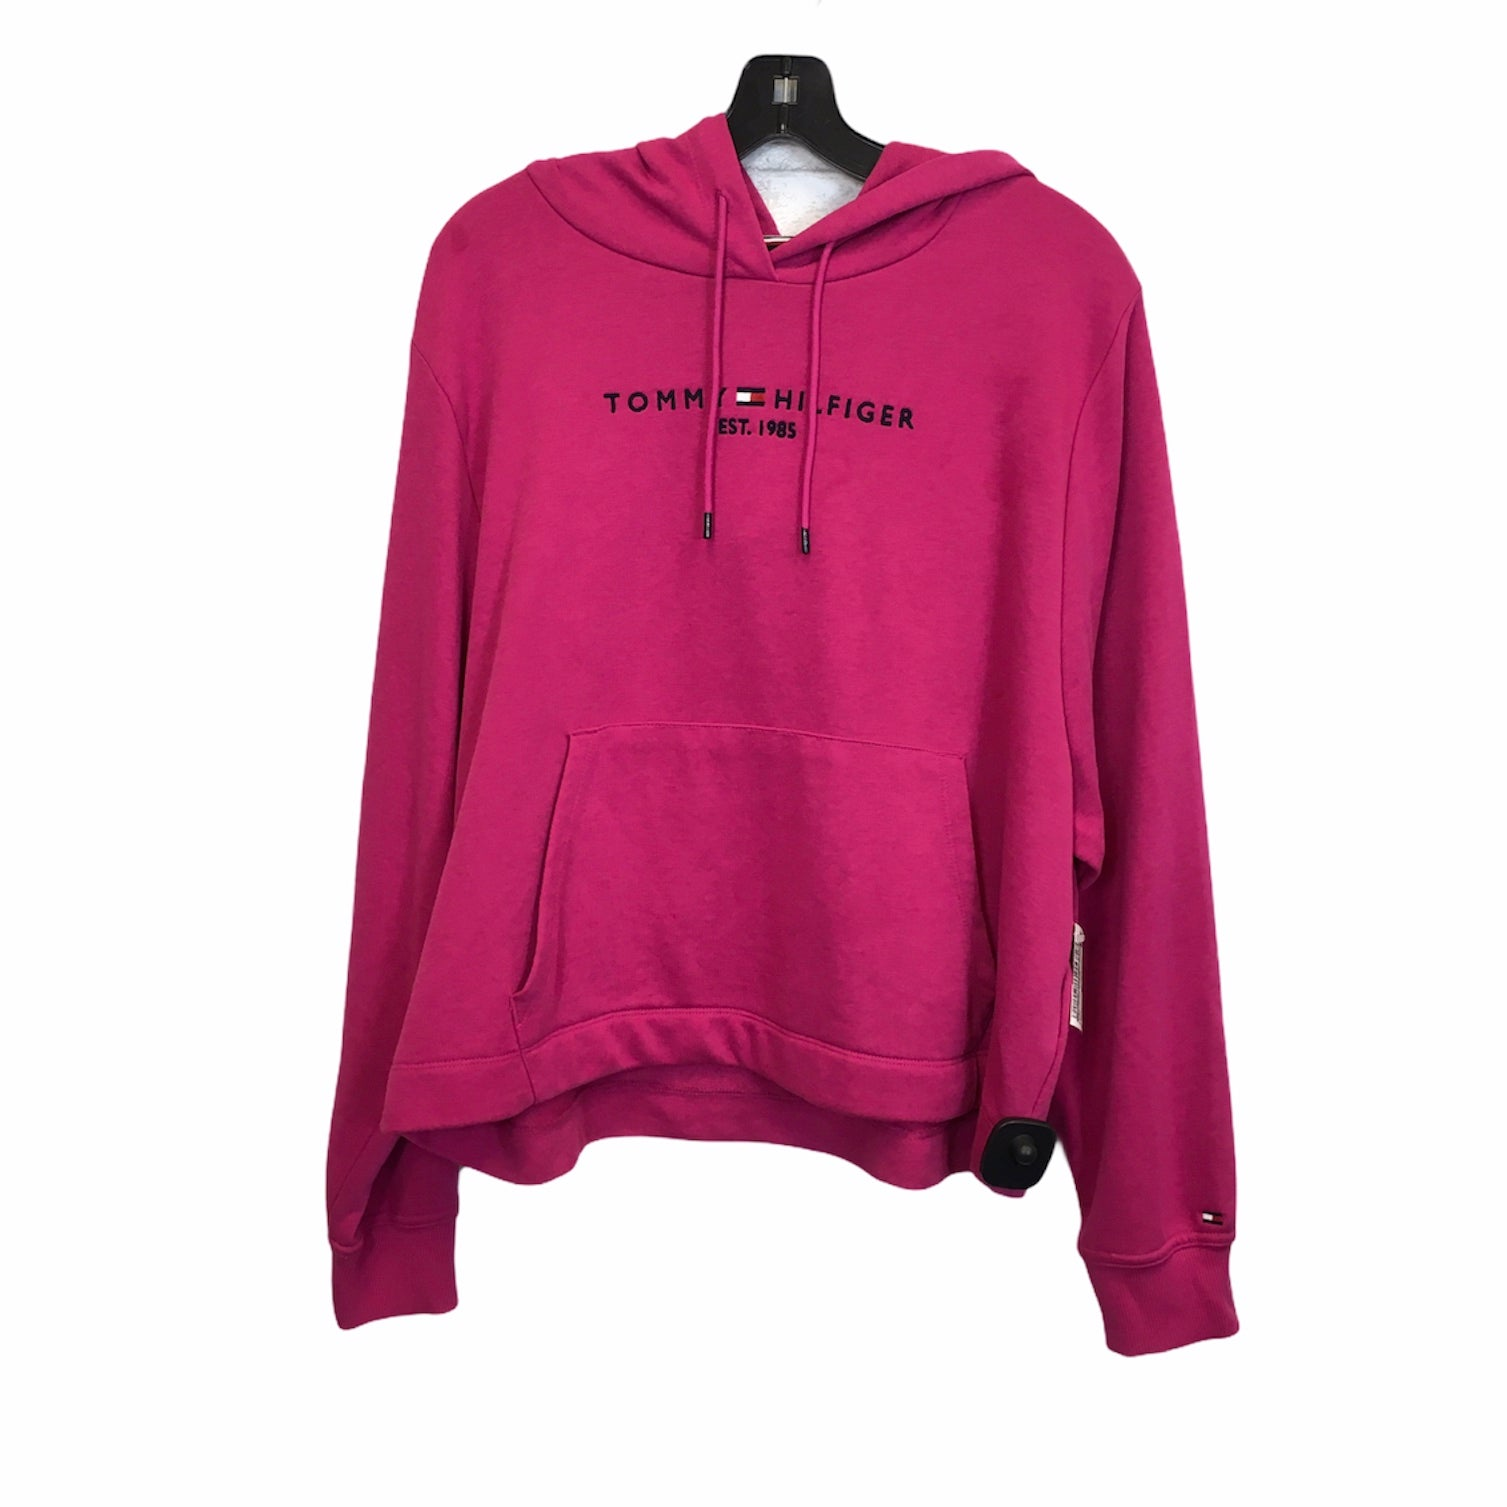 Primary Photo - BRAND: TOMMY HILFIGER <BR>STYLE: SWEATSHIRT HOODIE <BR>COLOR: PINK <BR>SIZE: XL <BR>SKU: 283-283149-7432